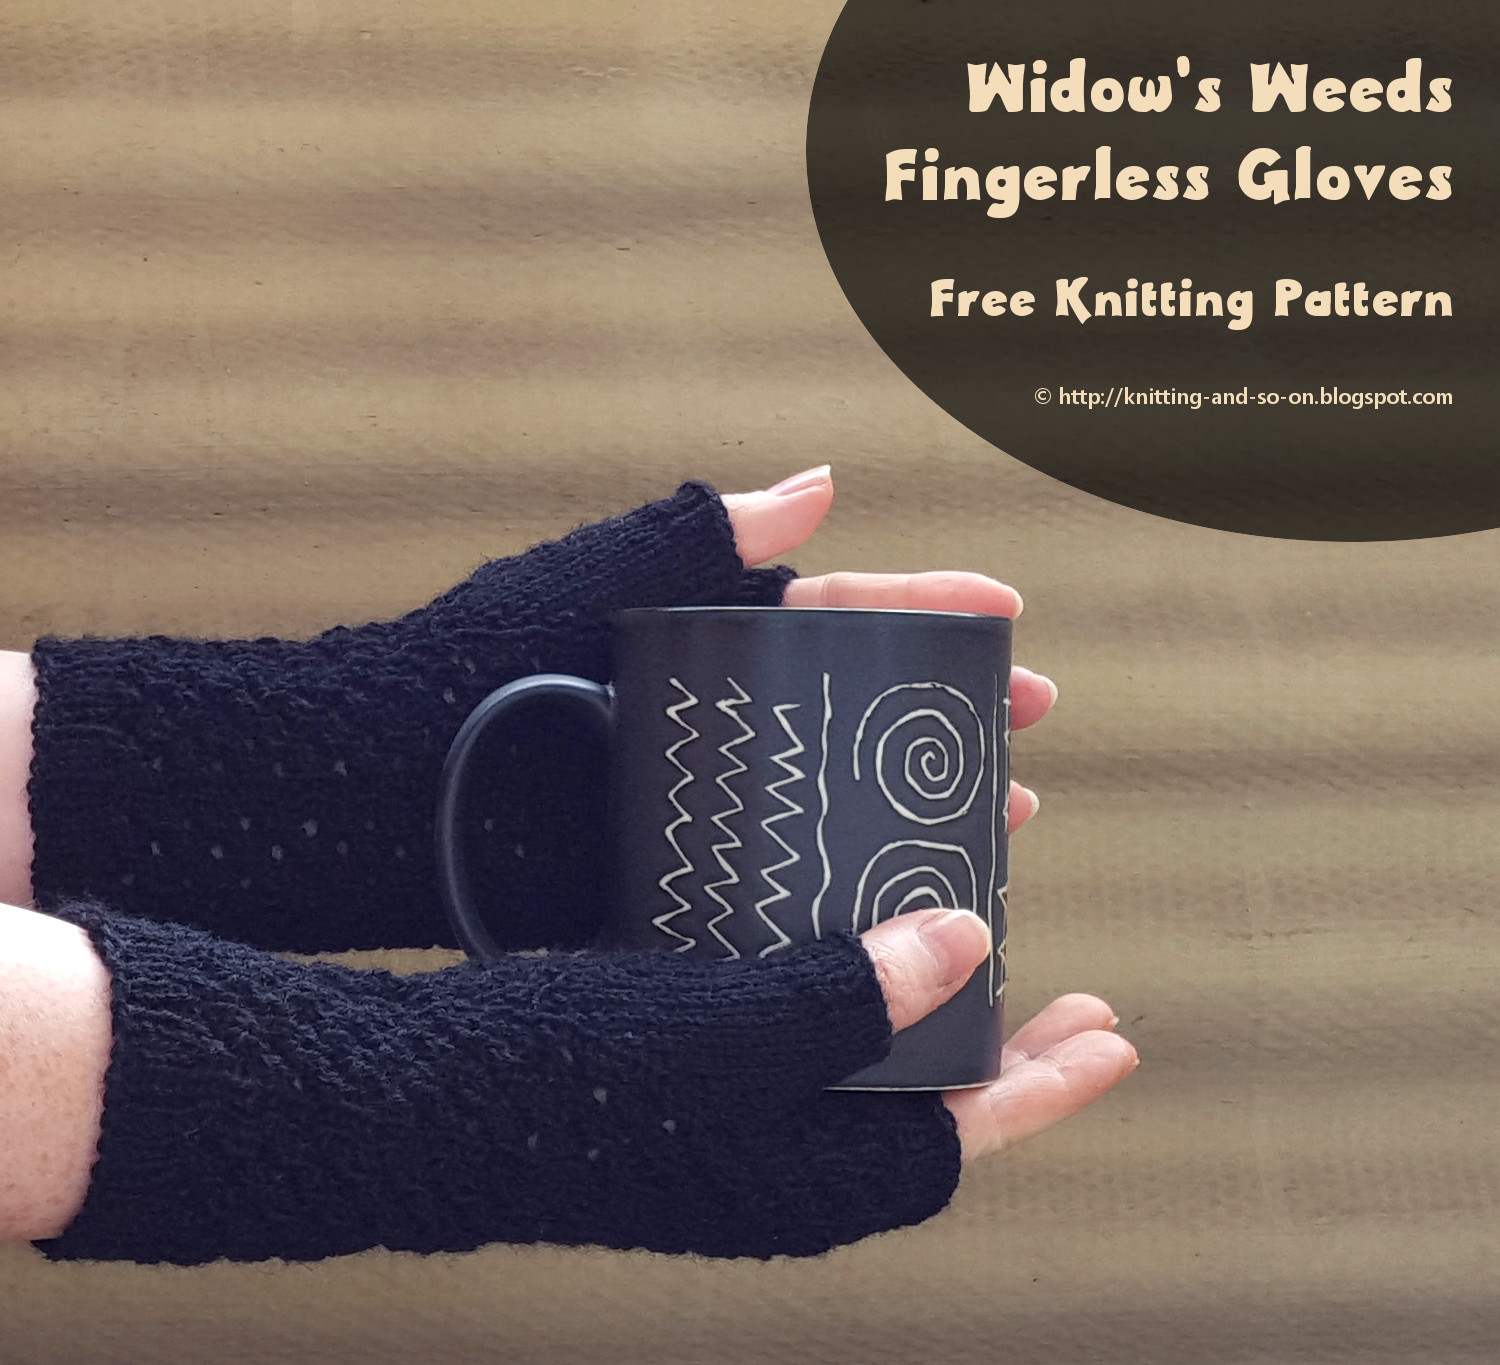 Knitting fingerless gloves in the round -  Knit A Pair Of Black Fingerless Gloves For Her I Decided On Something Unspectacular With An Easy Lace Pattern So That It Would Be Suitable Of Early